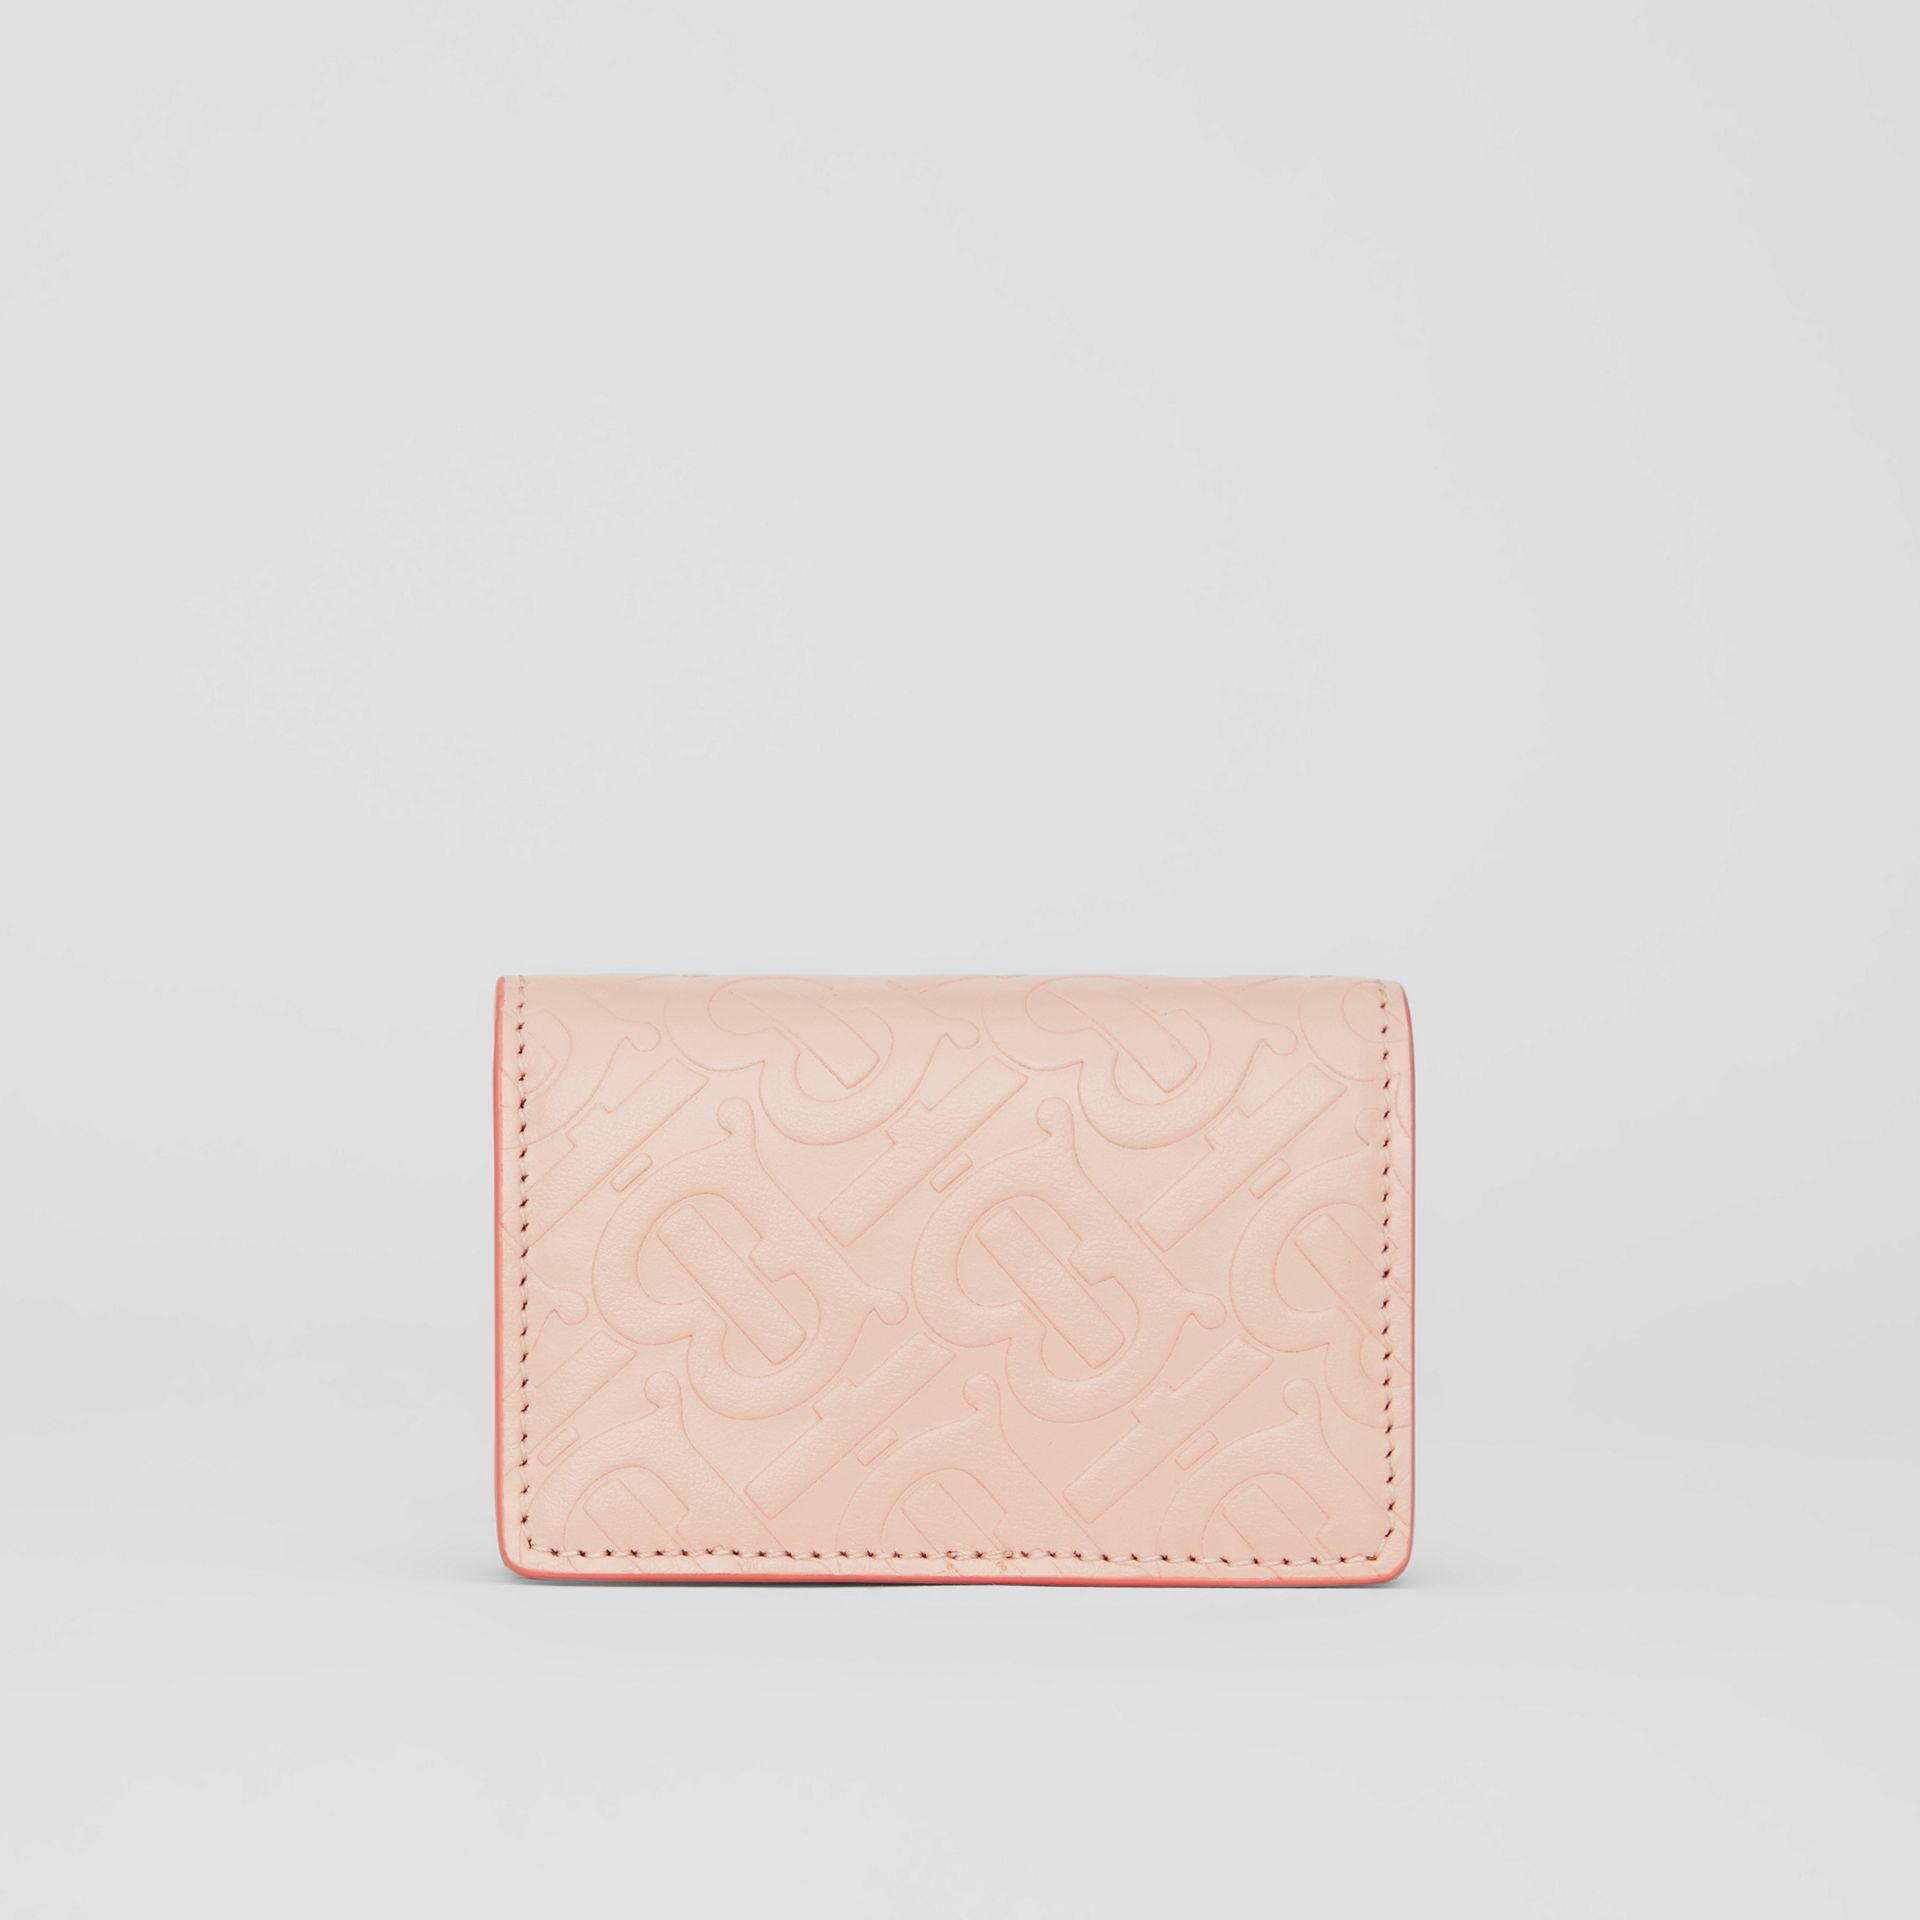 Monogram Leather Card Case in Rose Beige | Burberry United Kingdom - gallery image 4